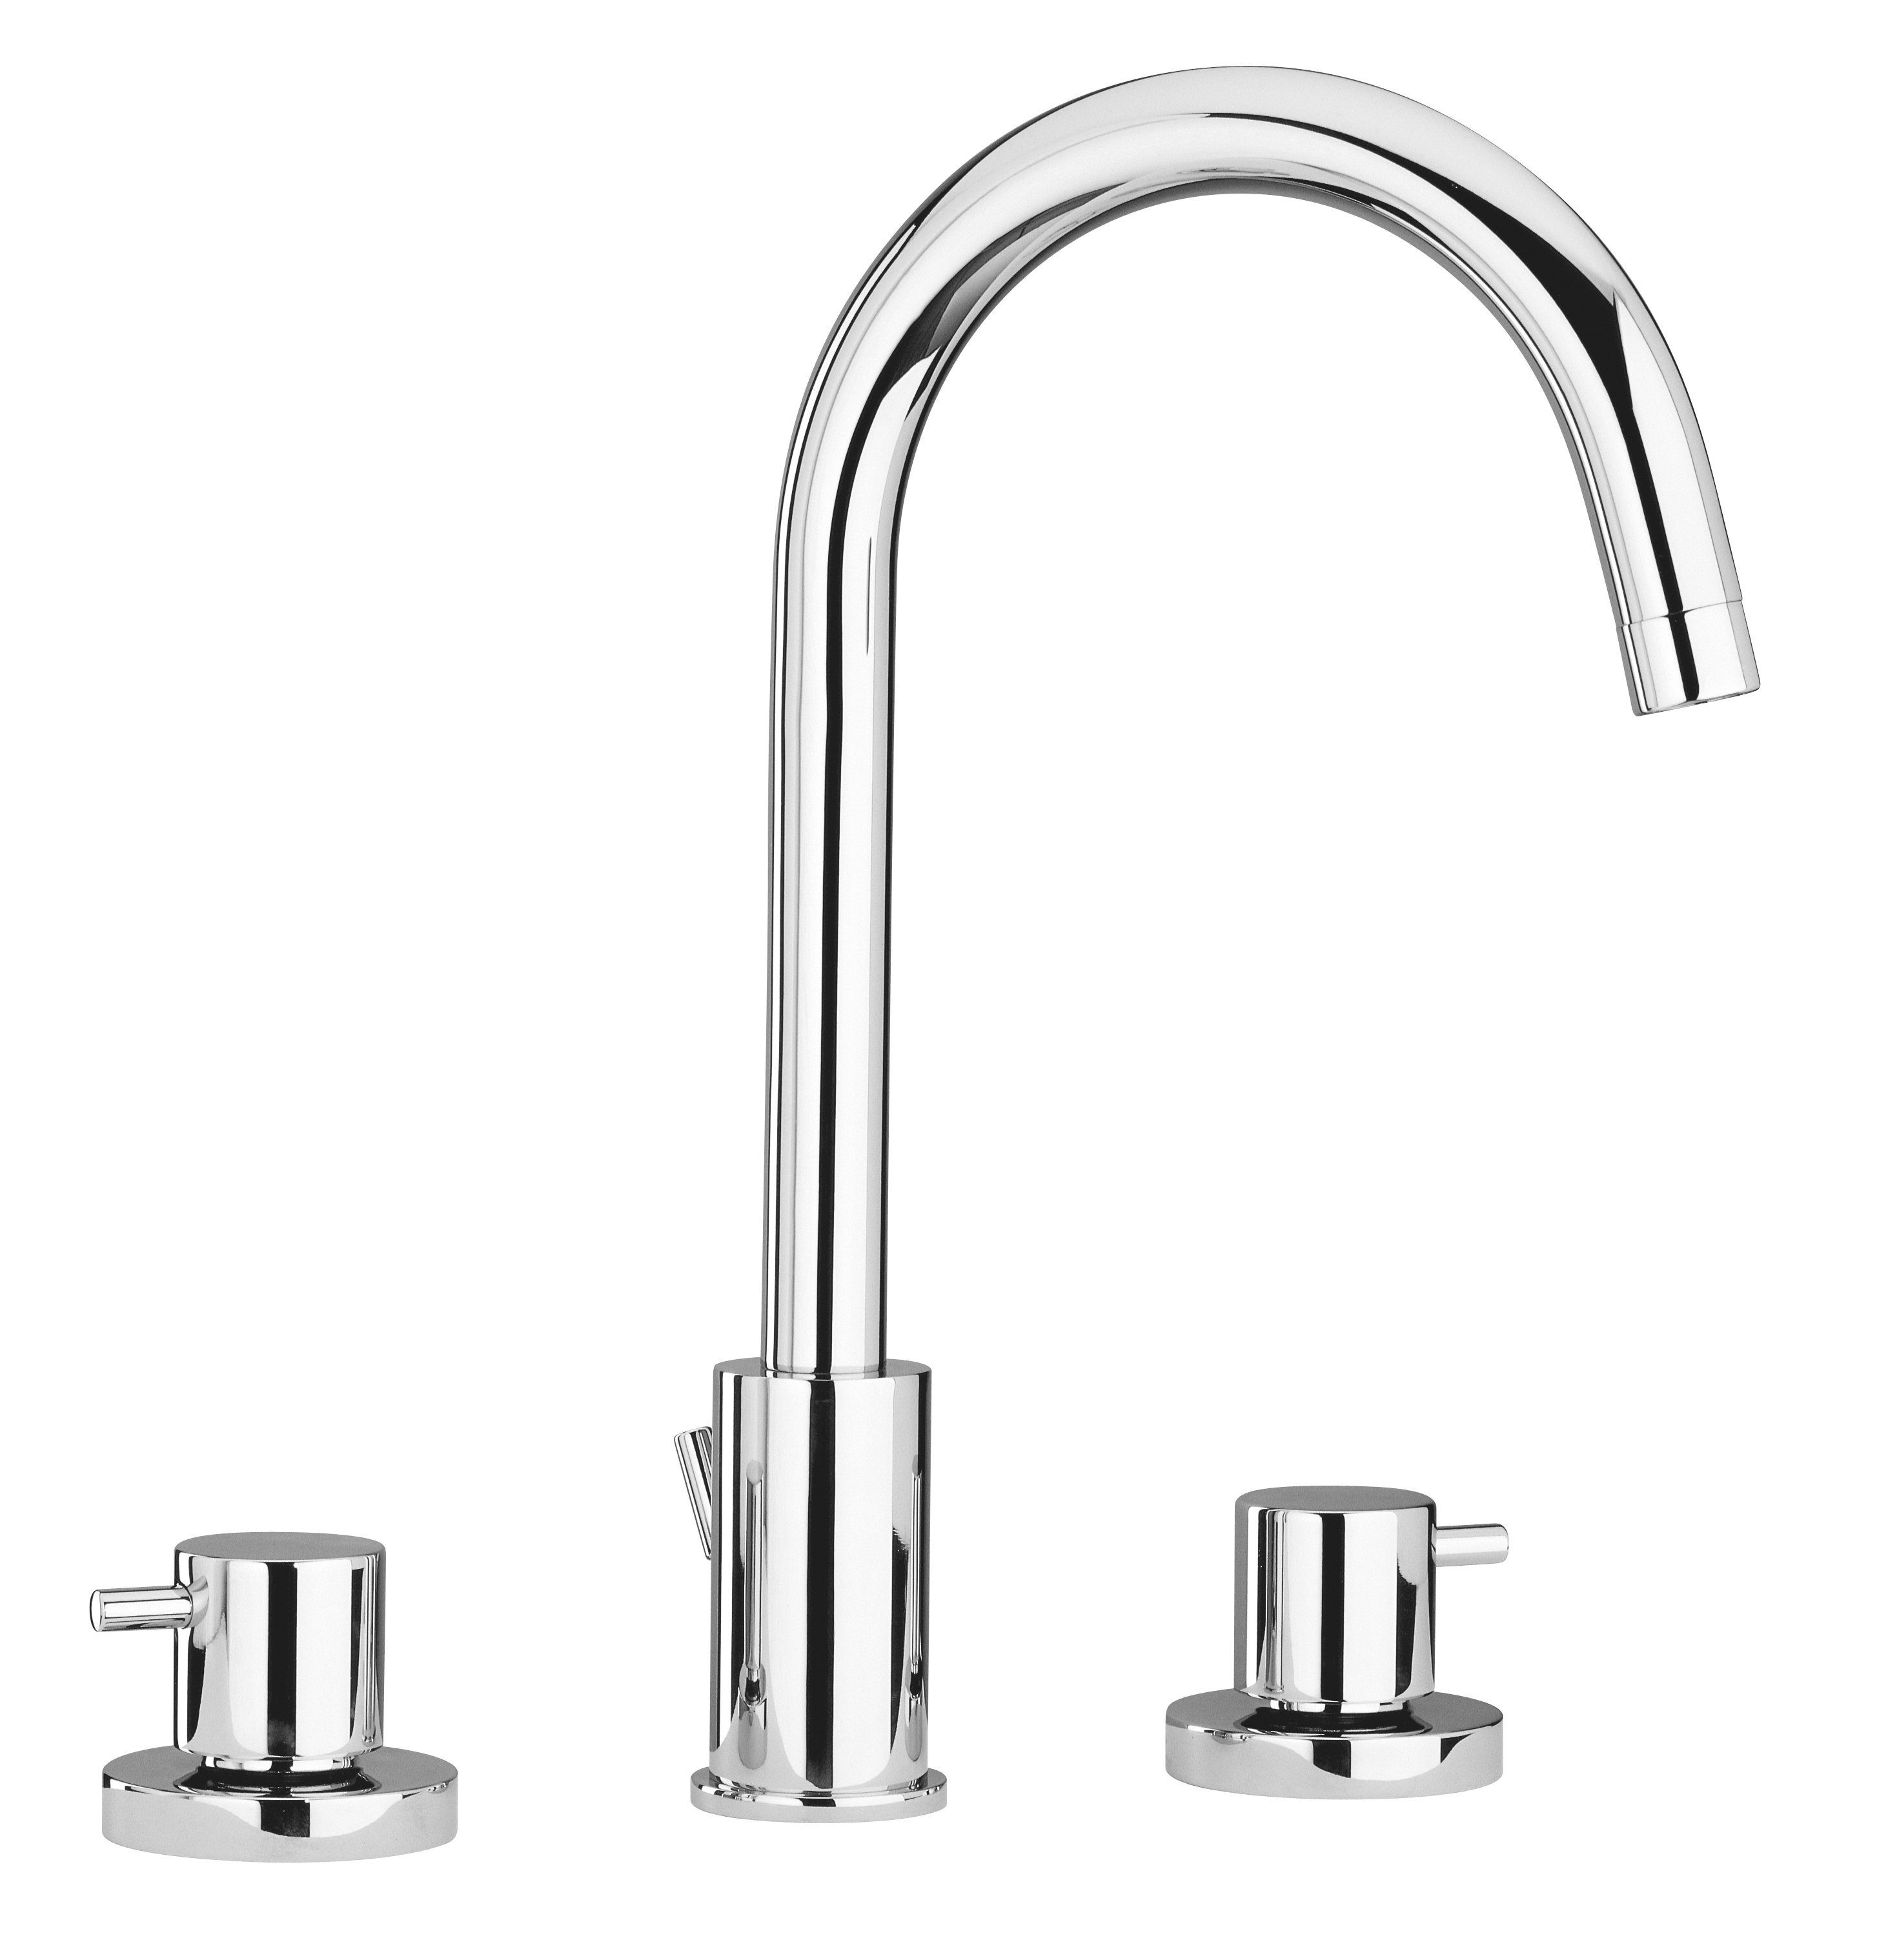 Widespread Lavatory Faucet in Chrome Finish